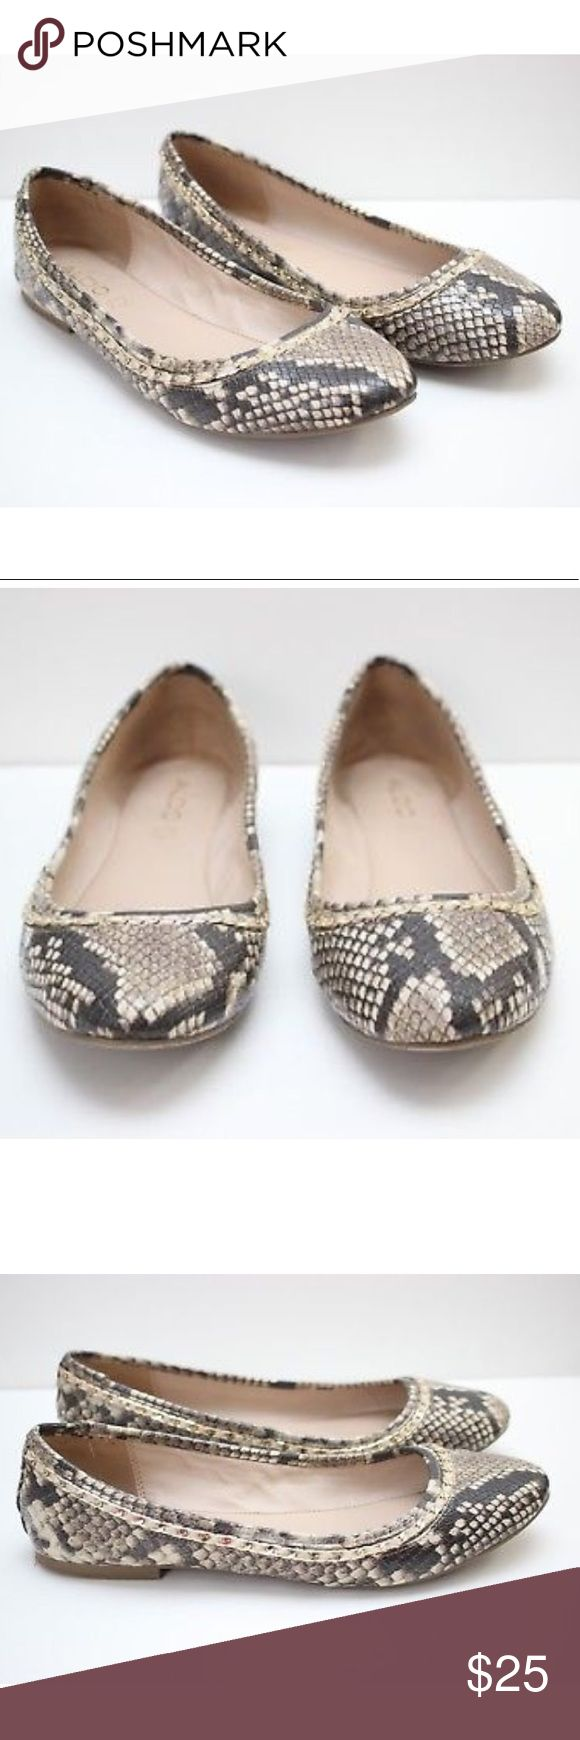 Aldo Brown Tan Brown Animal Print Ballet Flats Aldo Brown Tan Brown Snake Skin Animal Print Ballet Flat Shoes. Size 9. Aldo Shoes Flats & Loafers